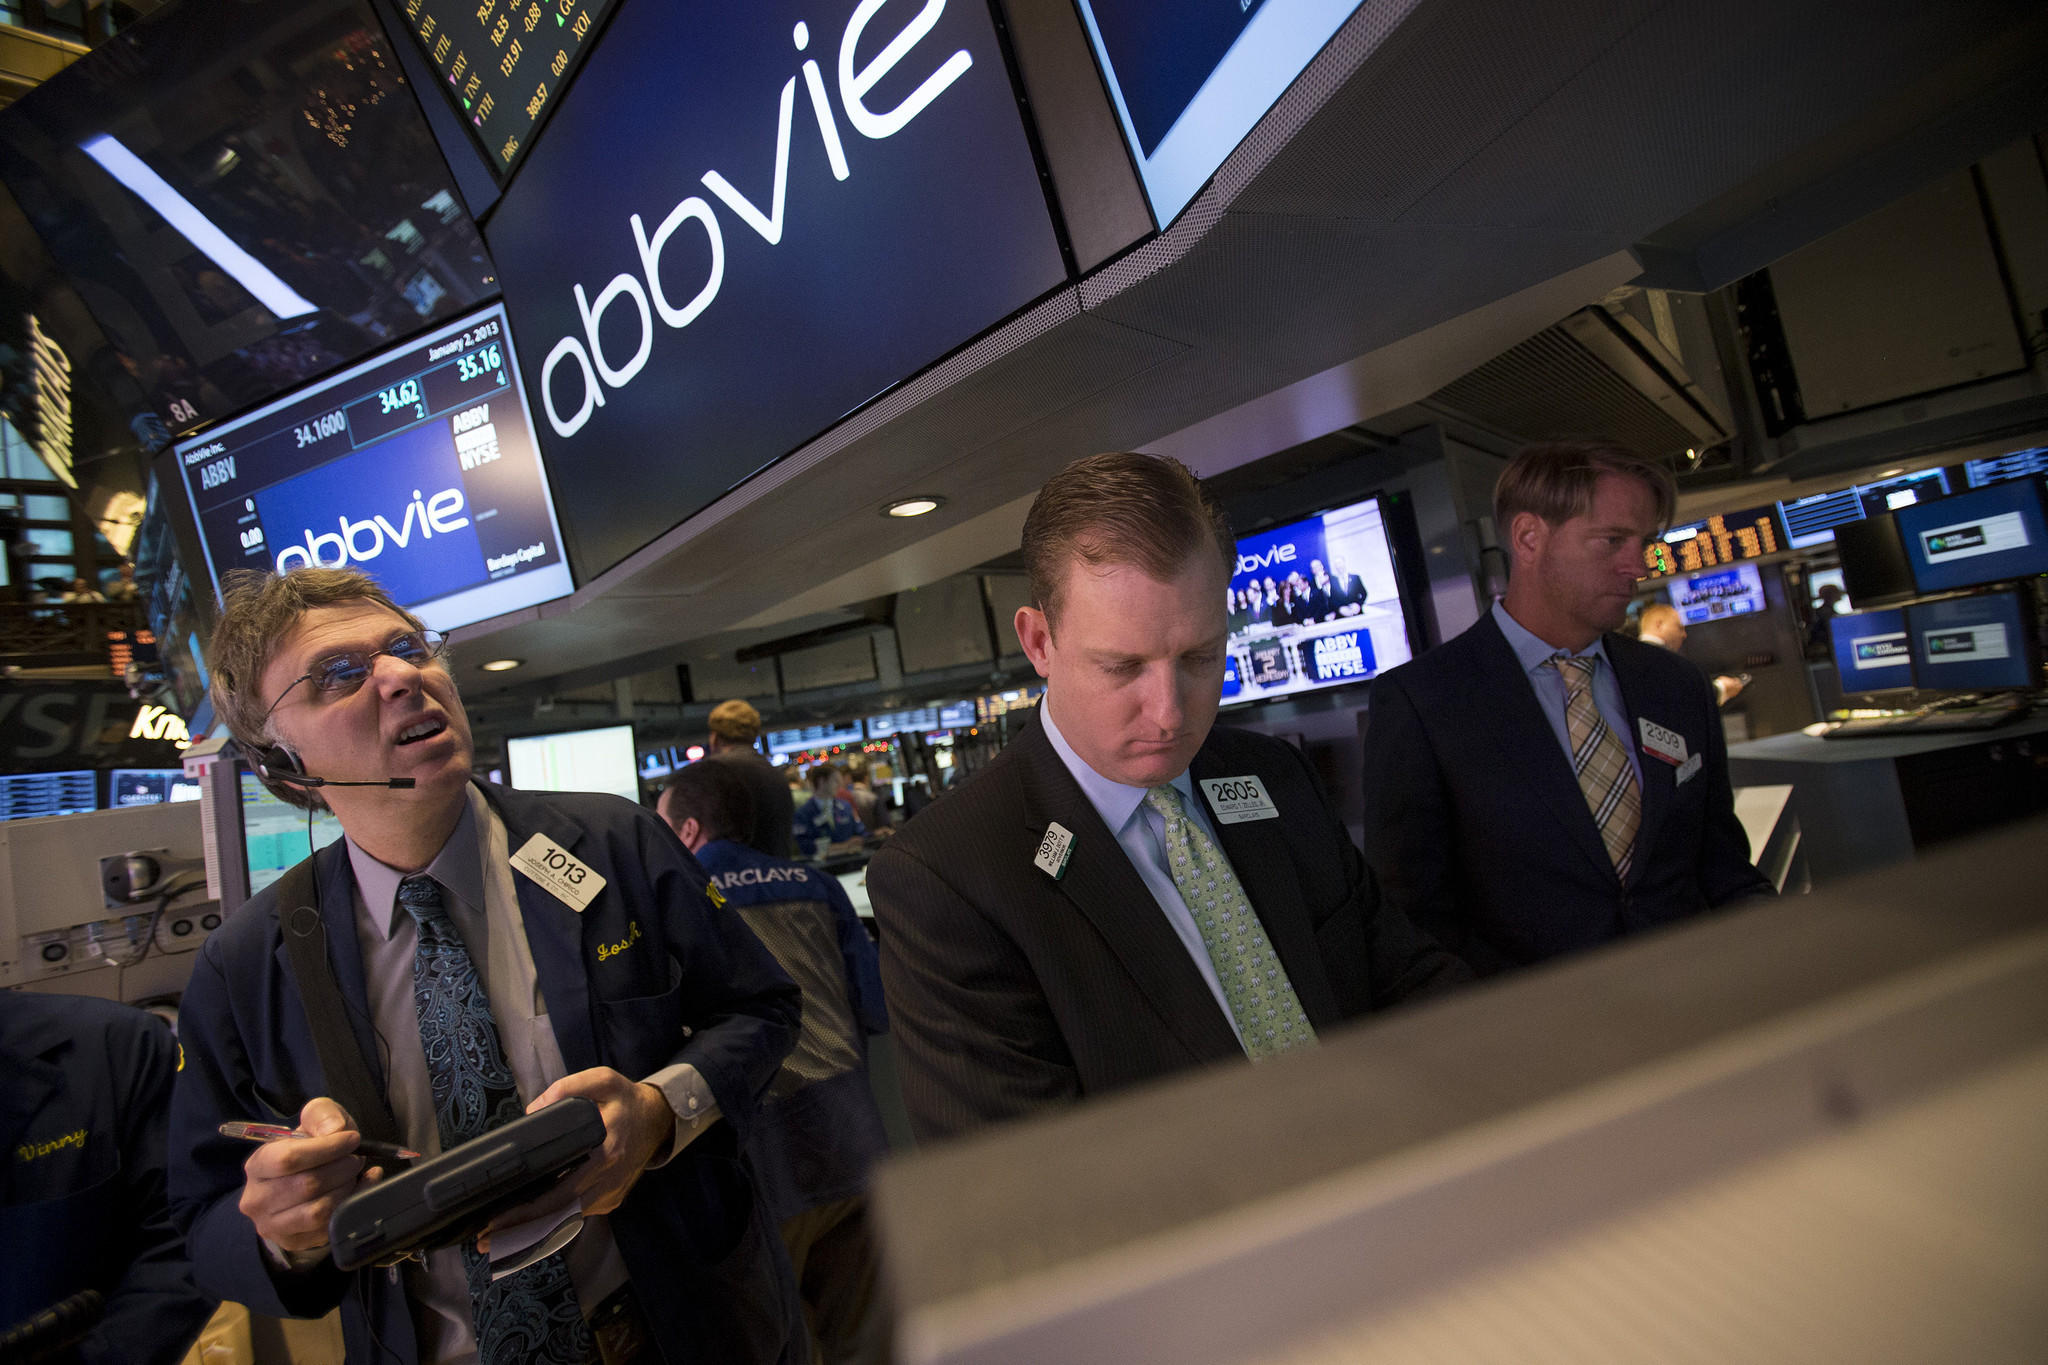 Traders work at the AbbVie Inc. booth on the floor of the New York Stock Exchange.